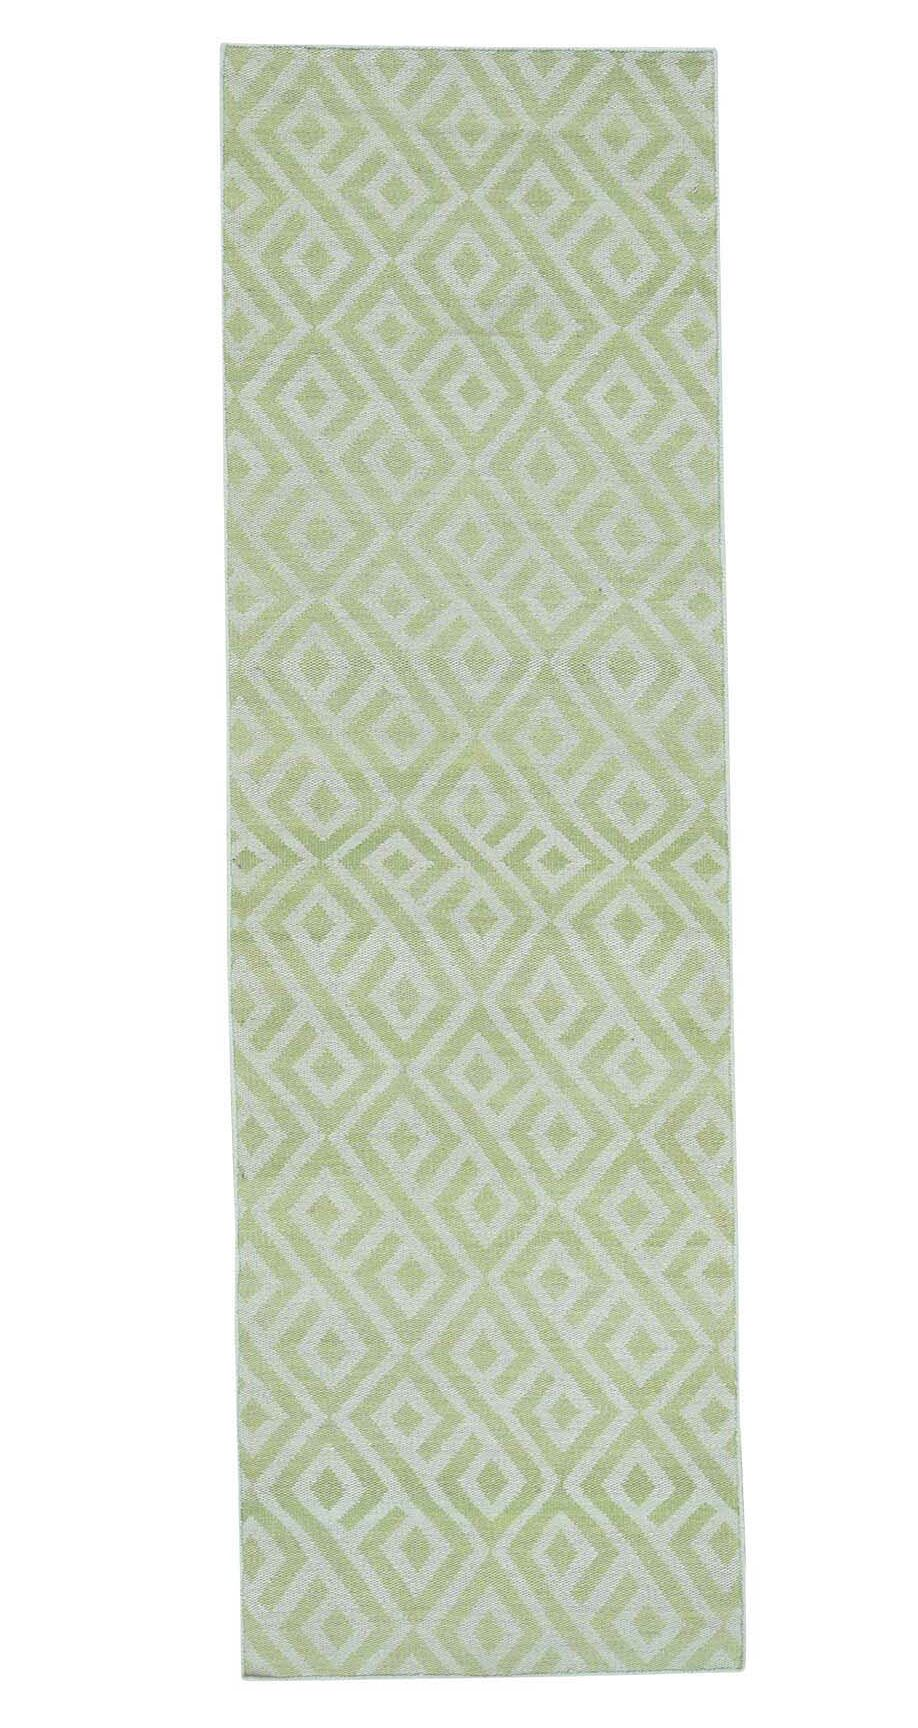 Reversible Kilim Flat Weave Hand-Knotted Light Green/Ivory Area Rug